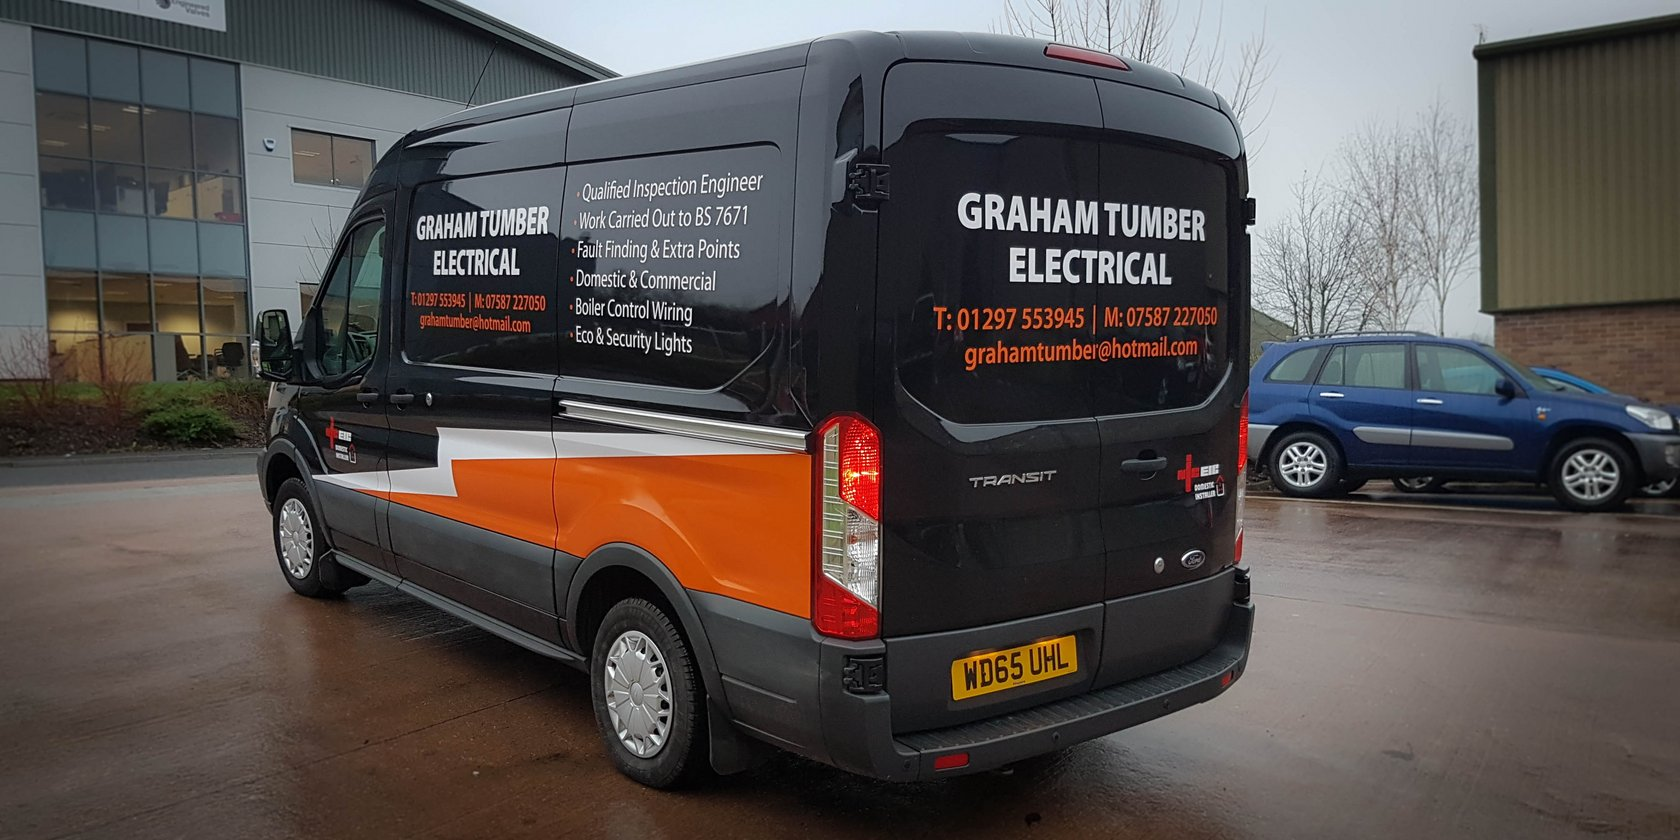 Graham Tumber Electrical Van